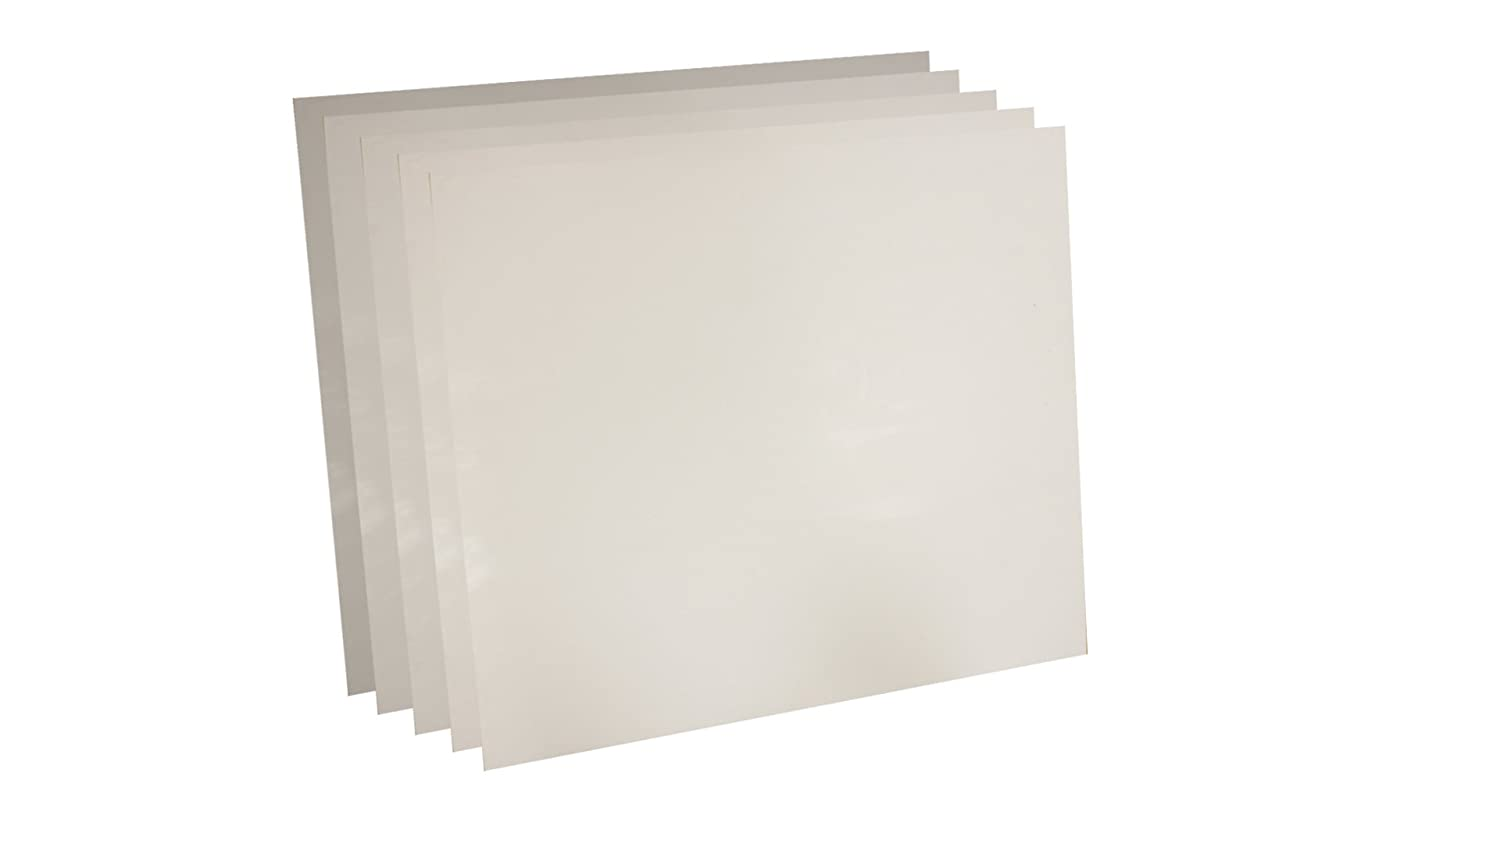 1//64 Thick Sterling Seal 7530.015624x24x5 White Virgin Teflon 7530 Sheet Pack of 5 Sur-Seal Inc Pack of 5 24 x 24 of NJ 1//64 Thick 24 x 24